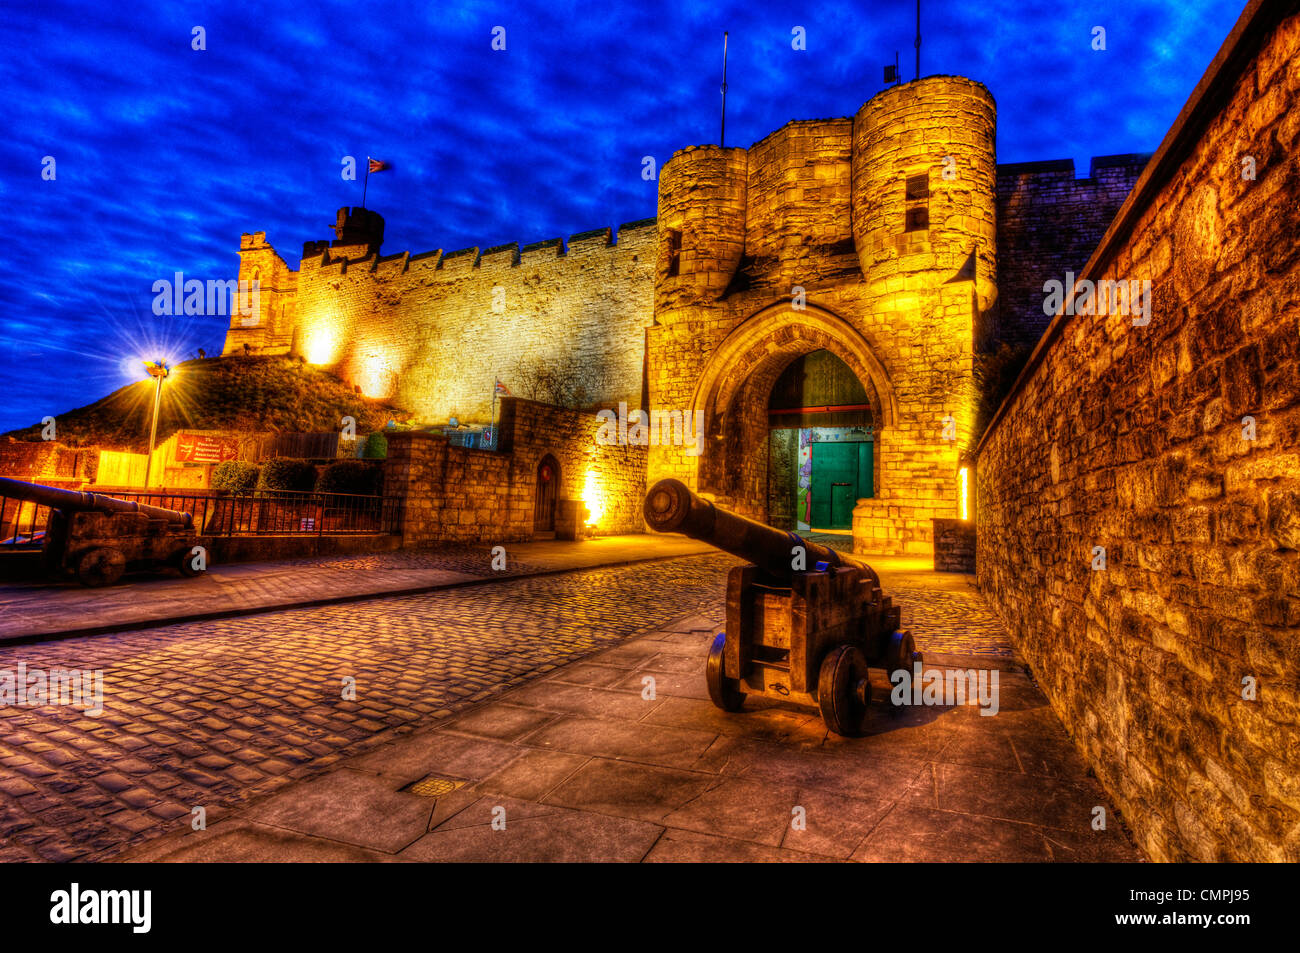 Lincoln Castle at night, Lincoln England - Stock Image